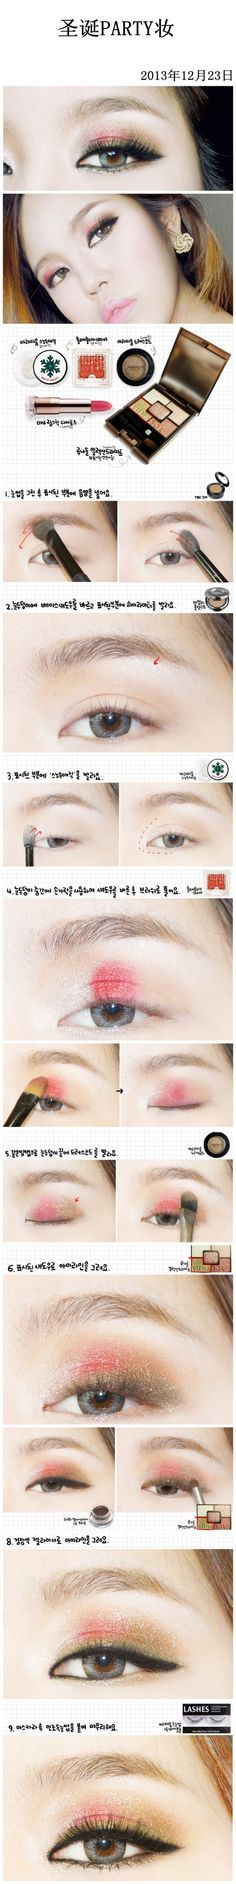 Korean make up eye pink gold brown shimmer Can Makeup, Gold Eye Makeup, Girls Makeup, Makeup Inspo, Makeup Inspiration, Beauty Makeup, Makeup Tips, Asian Makeup Looks, Korean Eye Makeup